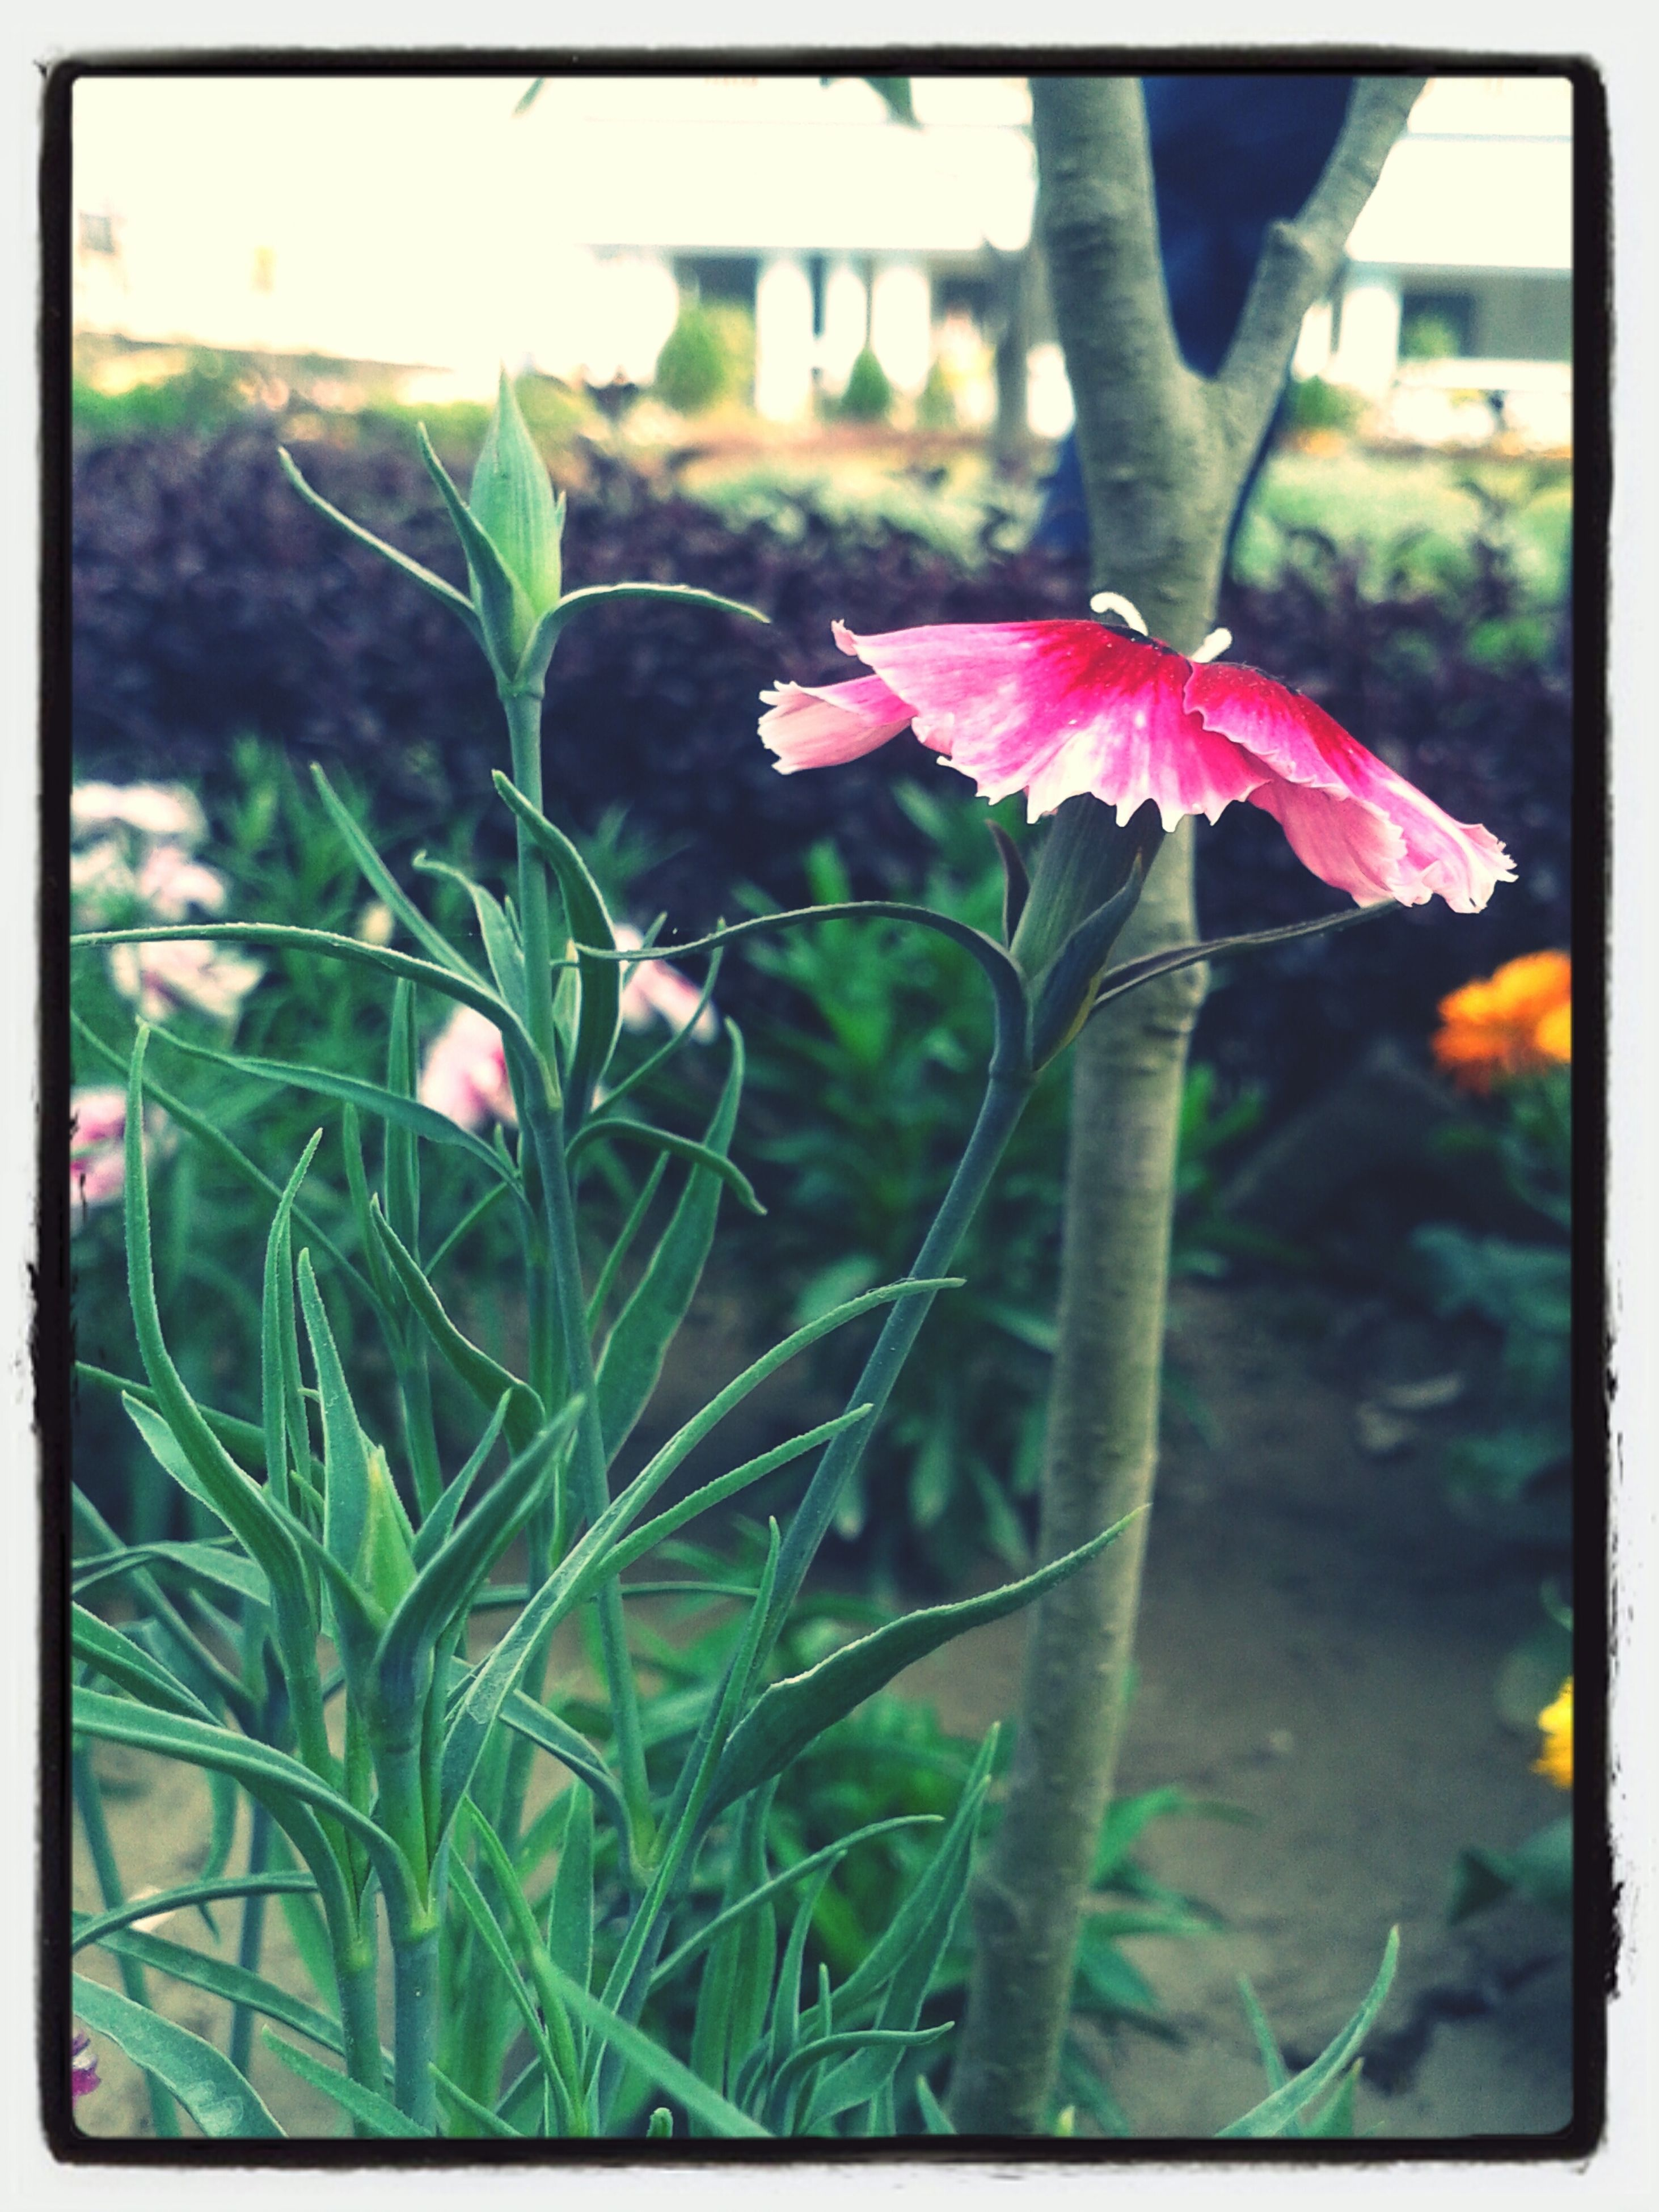 transfer print, flower, growth, focus on foreground, auto post production filter, close-up, plant, fragility, freshness, petal, nature, beauty in nature, leaf, selective focus, day, park - man made space, front or back yard, blooming, stem, outdoors